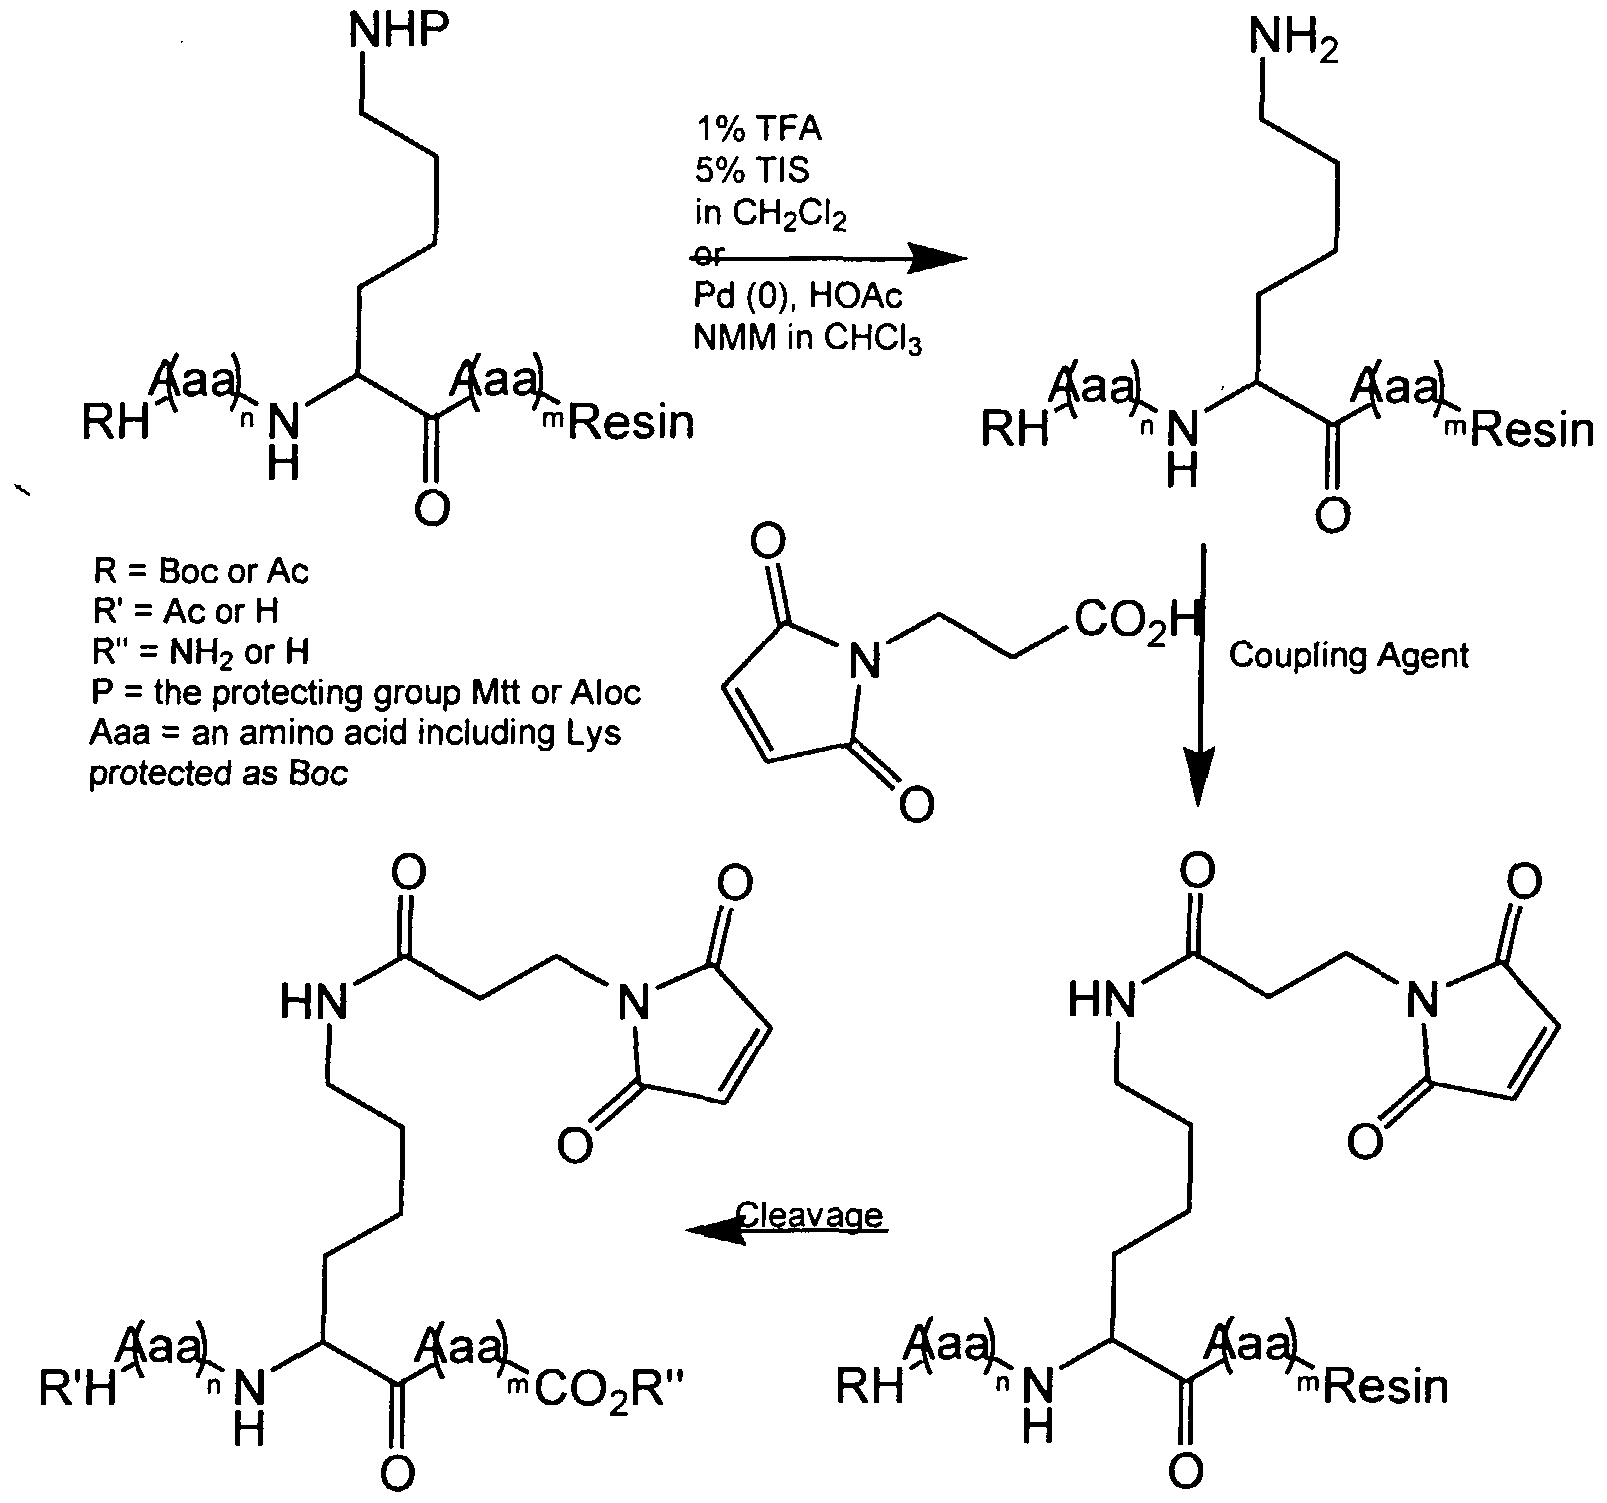 peptide structure diagram simple wiring for light sensor schematic of a get free image about